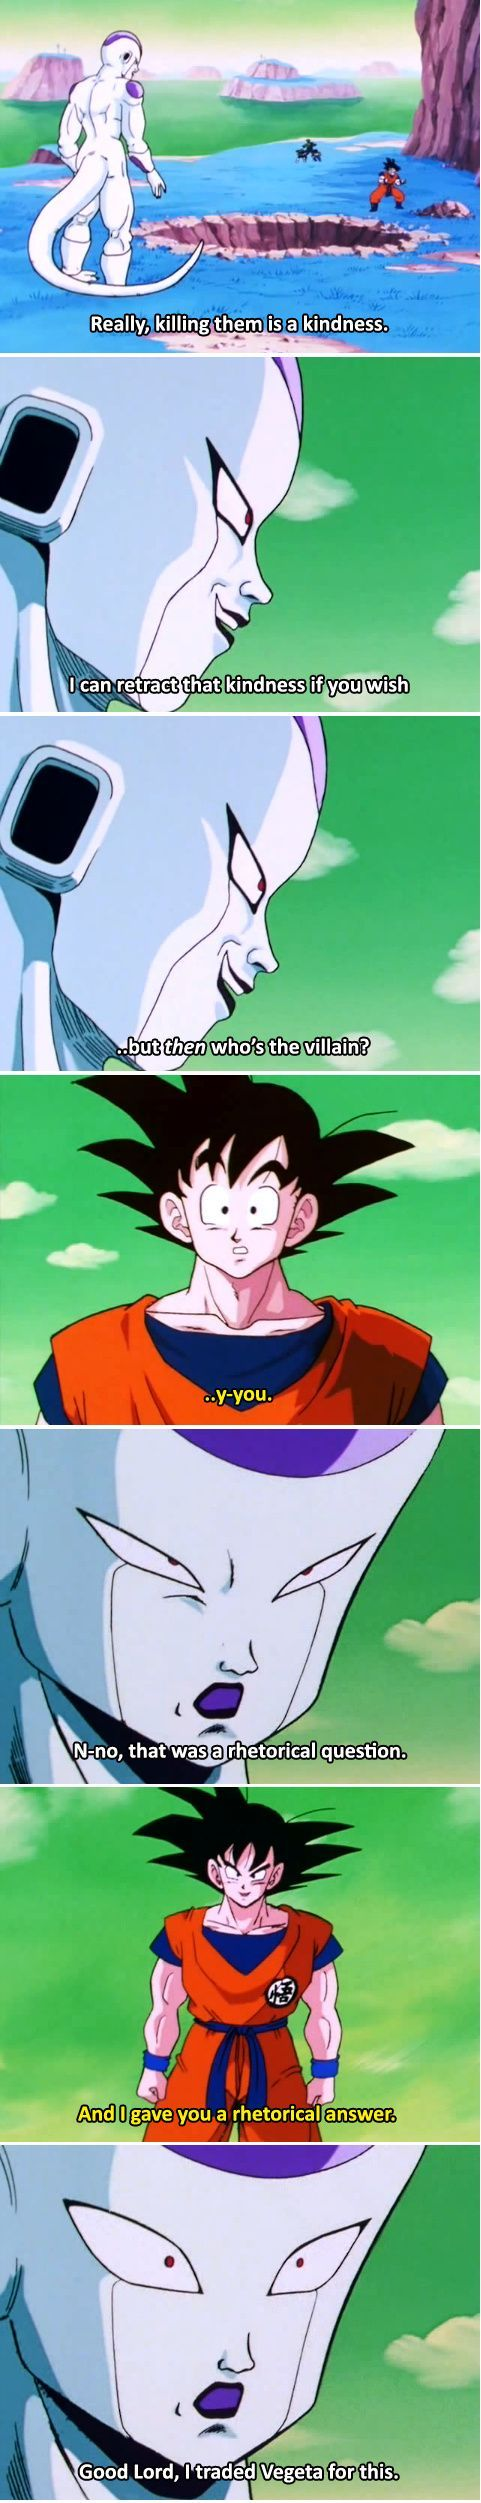 Smart move, Goku... - Visit now for 3D Dragon Ball Z compression shirts now on sale! #dragonball #dbz #dragonballsuper